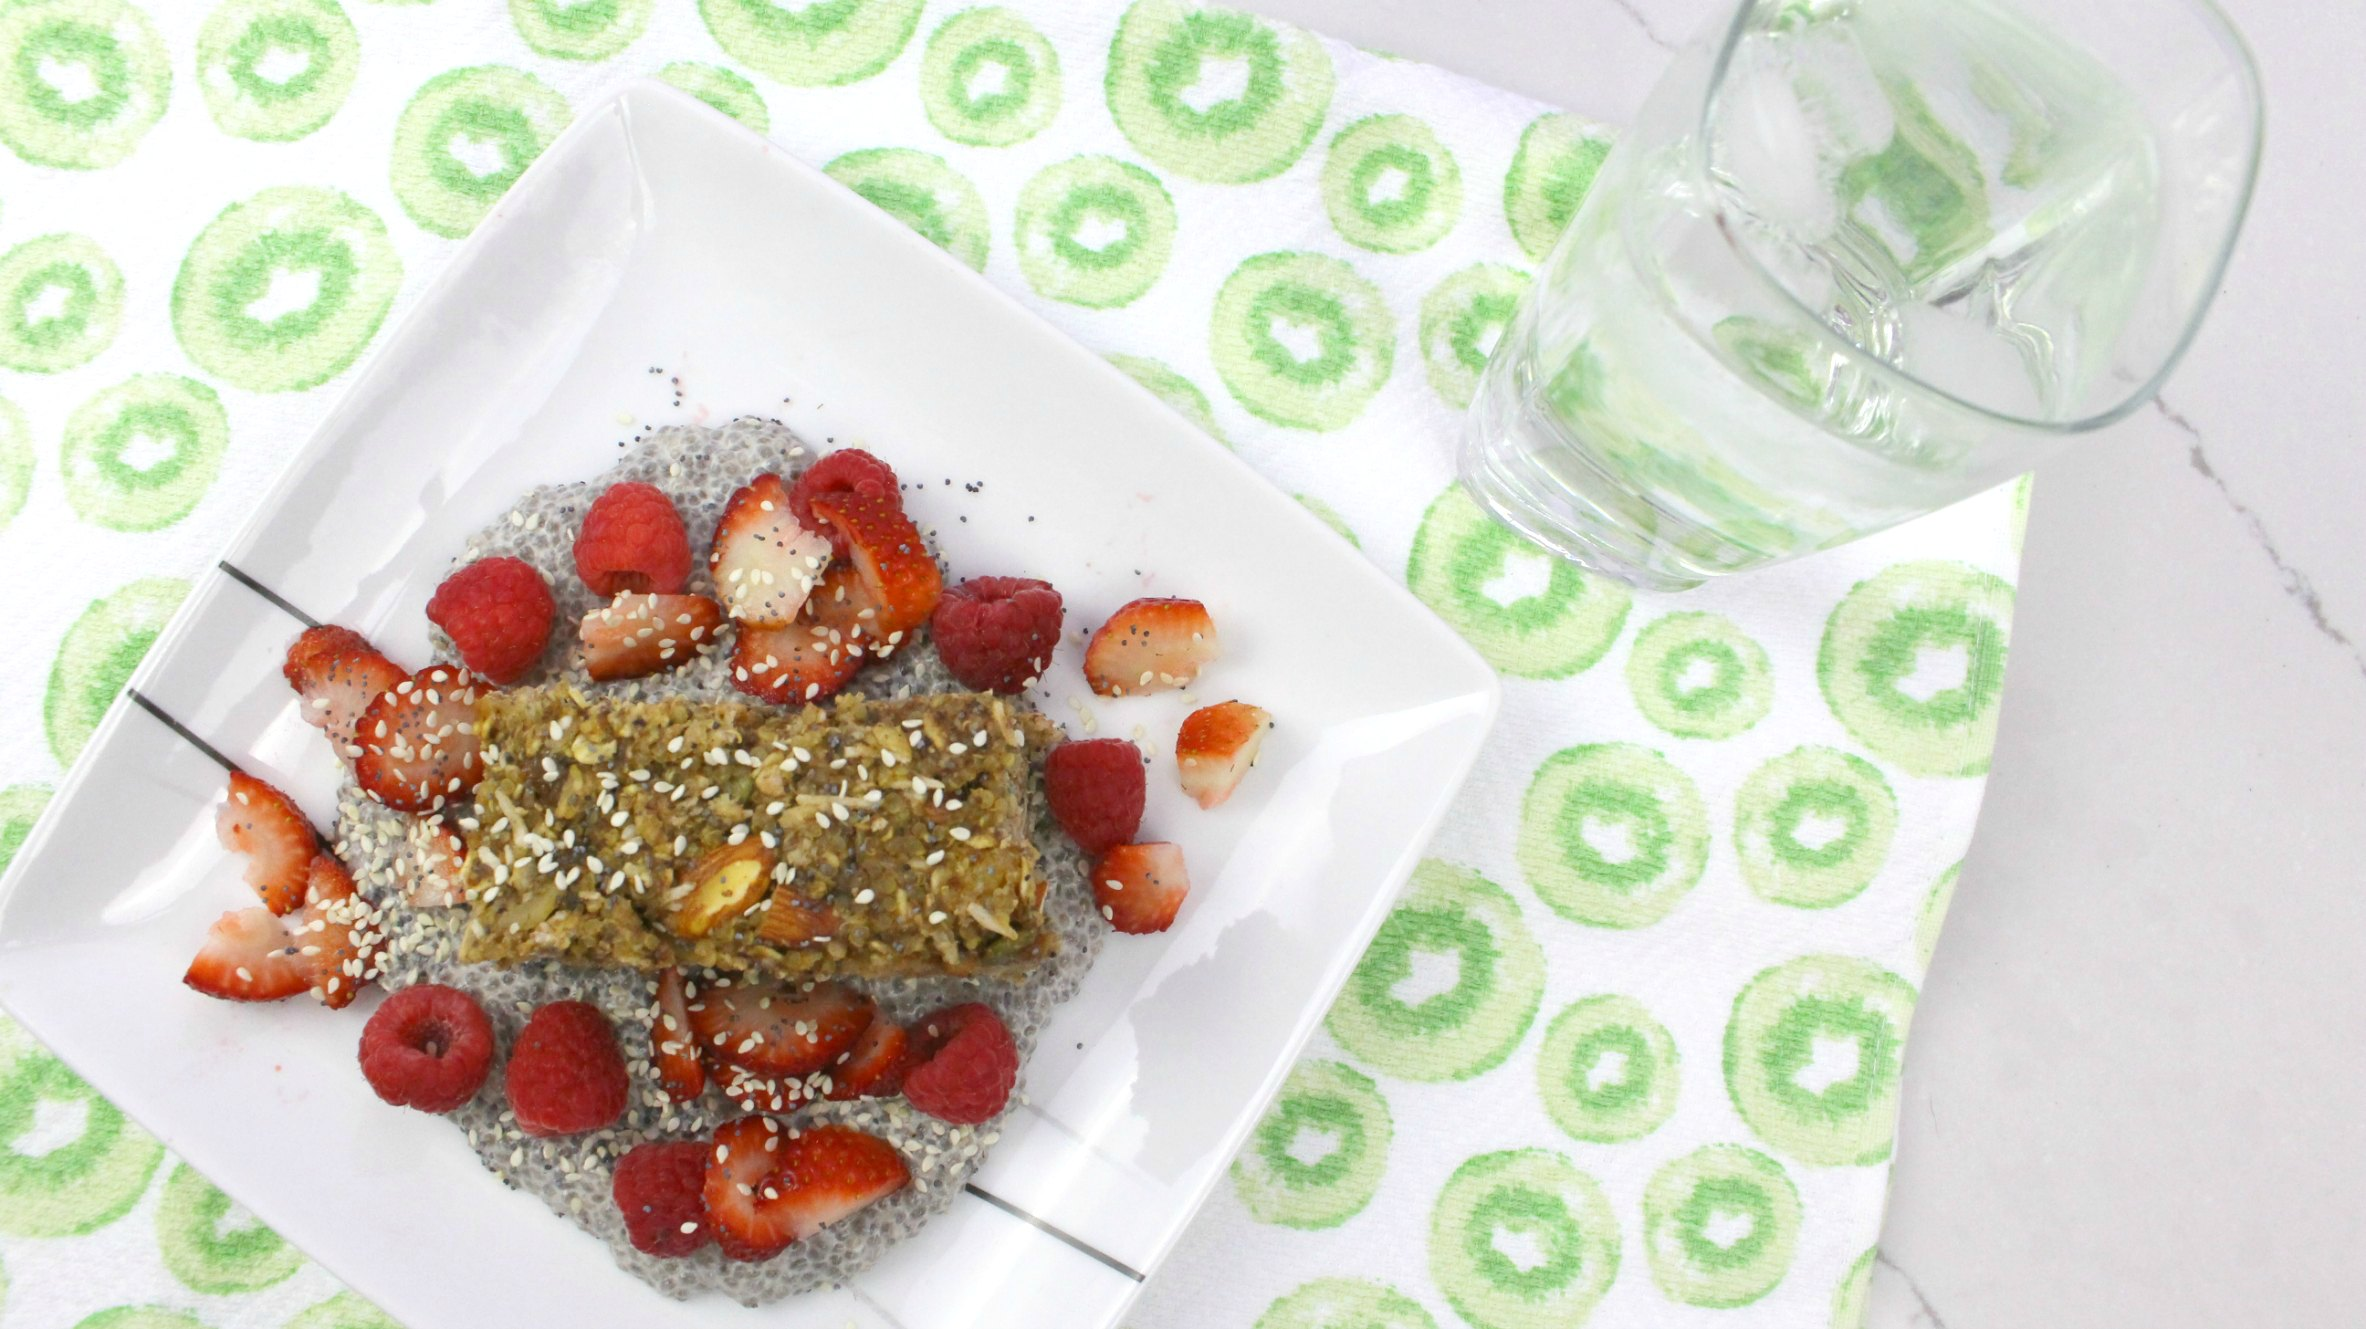 Delicious chia pudding with a healthy make ahead breakfast bar and some berries. Great lactation boosting recipe for new moms. Dairy free and vegan breakfast.